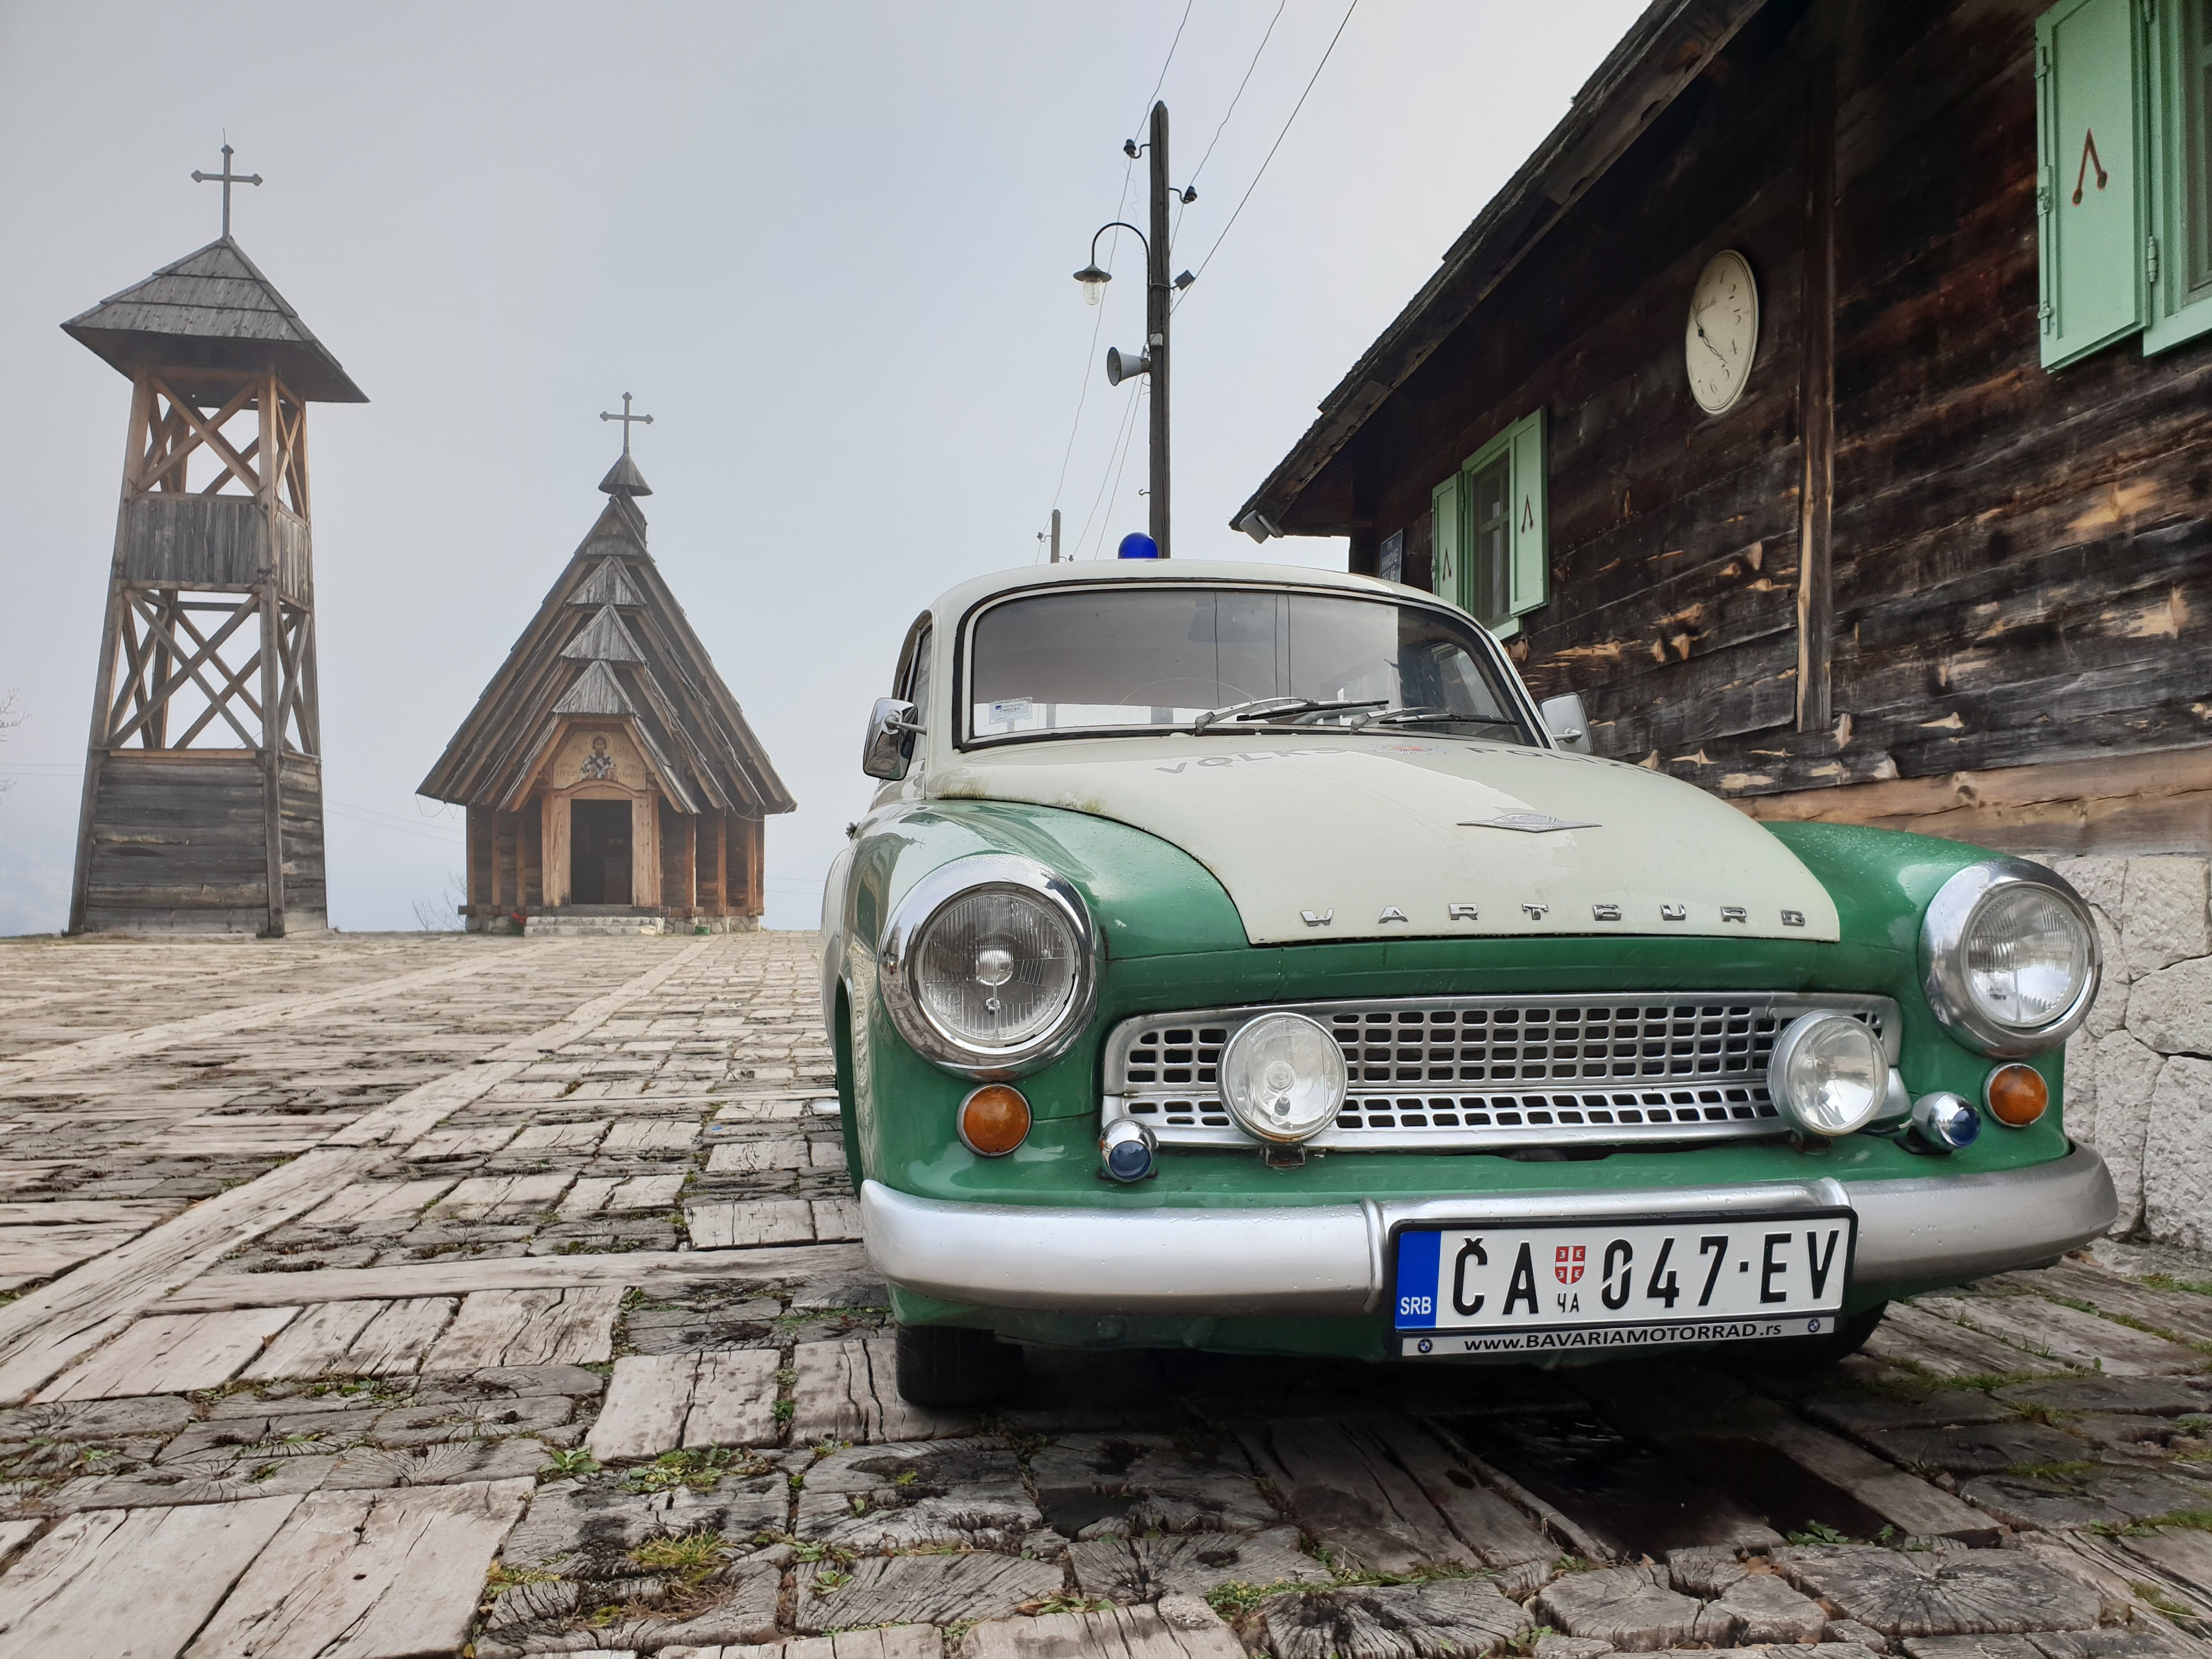 green and white vehicle near wooden buildings